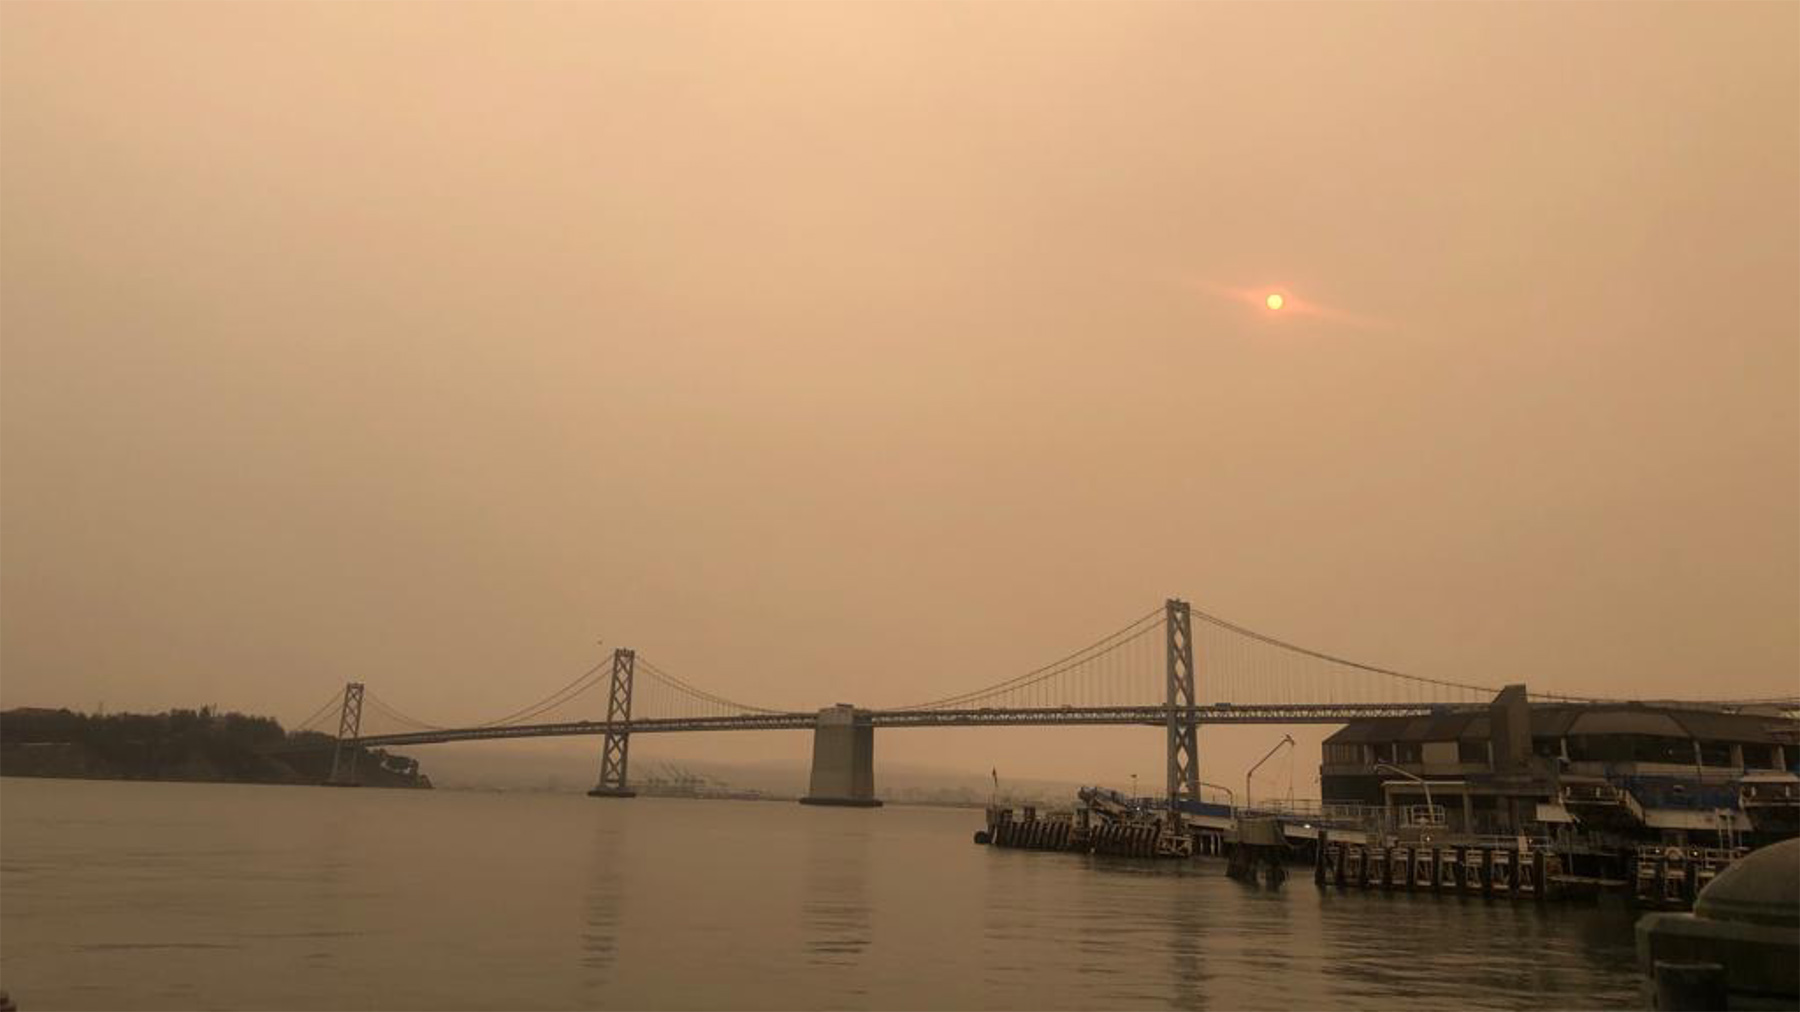 Smoky skies above the Golden Gate Bridge in San Francisco during an outbreak of wildfires in September 2020. (Kaitlyn Frysztak/Direct Relief)